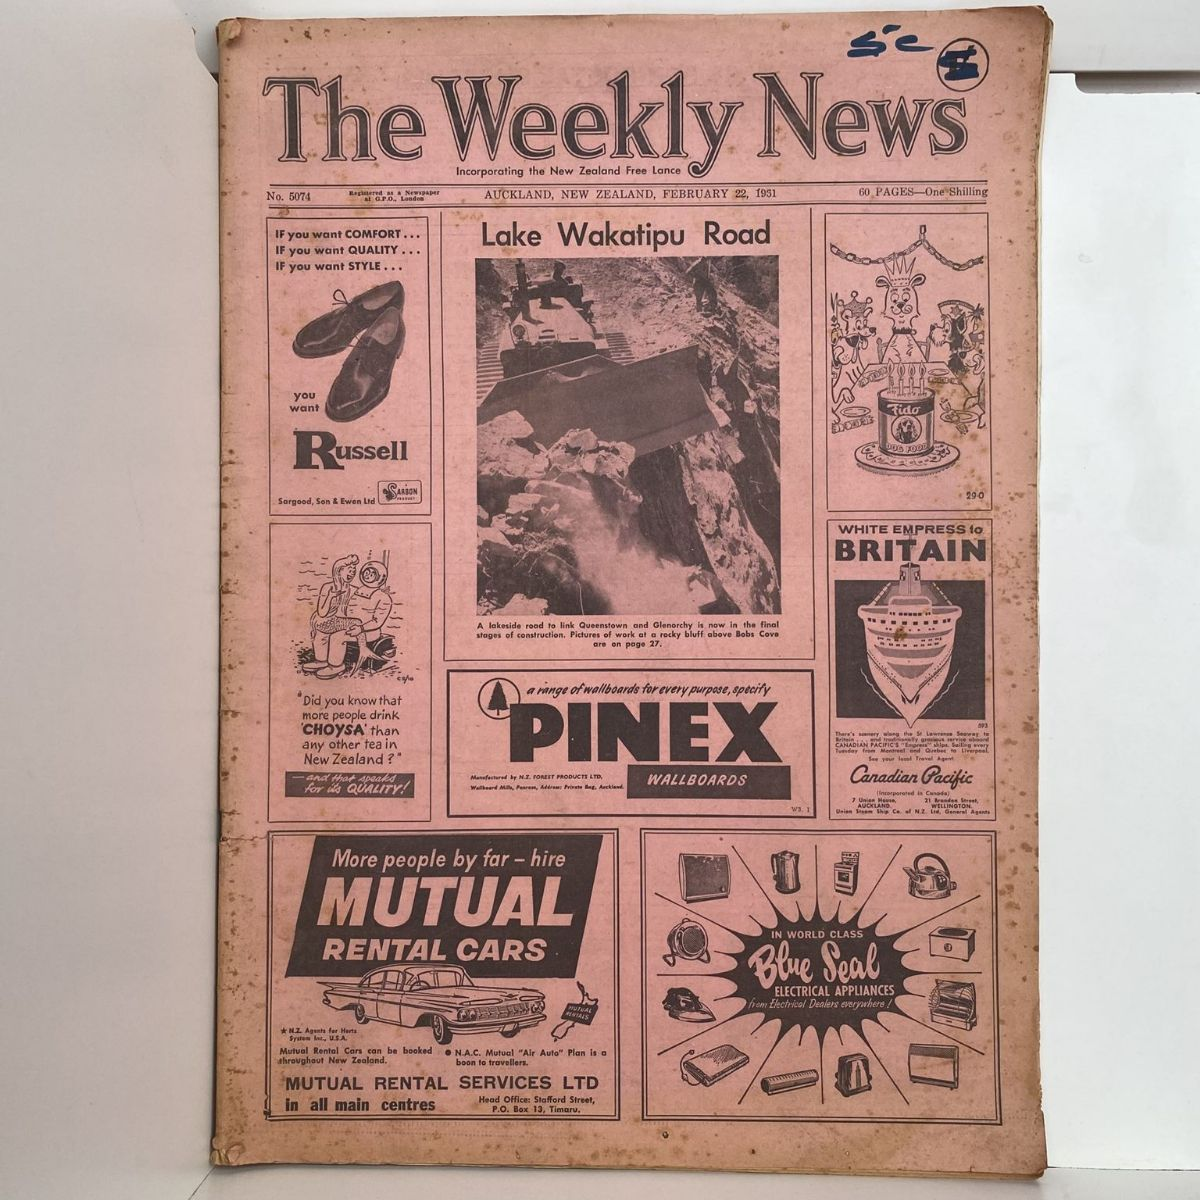 The Weekly News - 22 February 1961